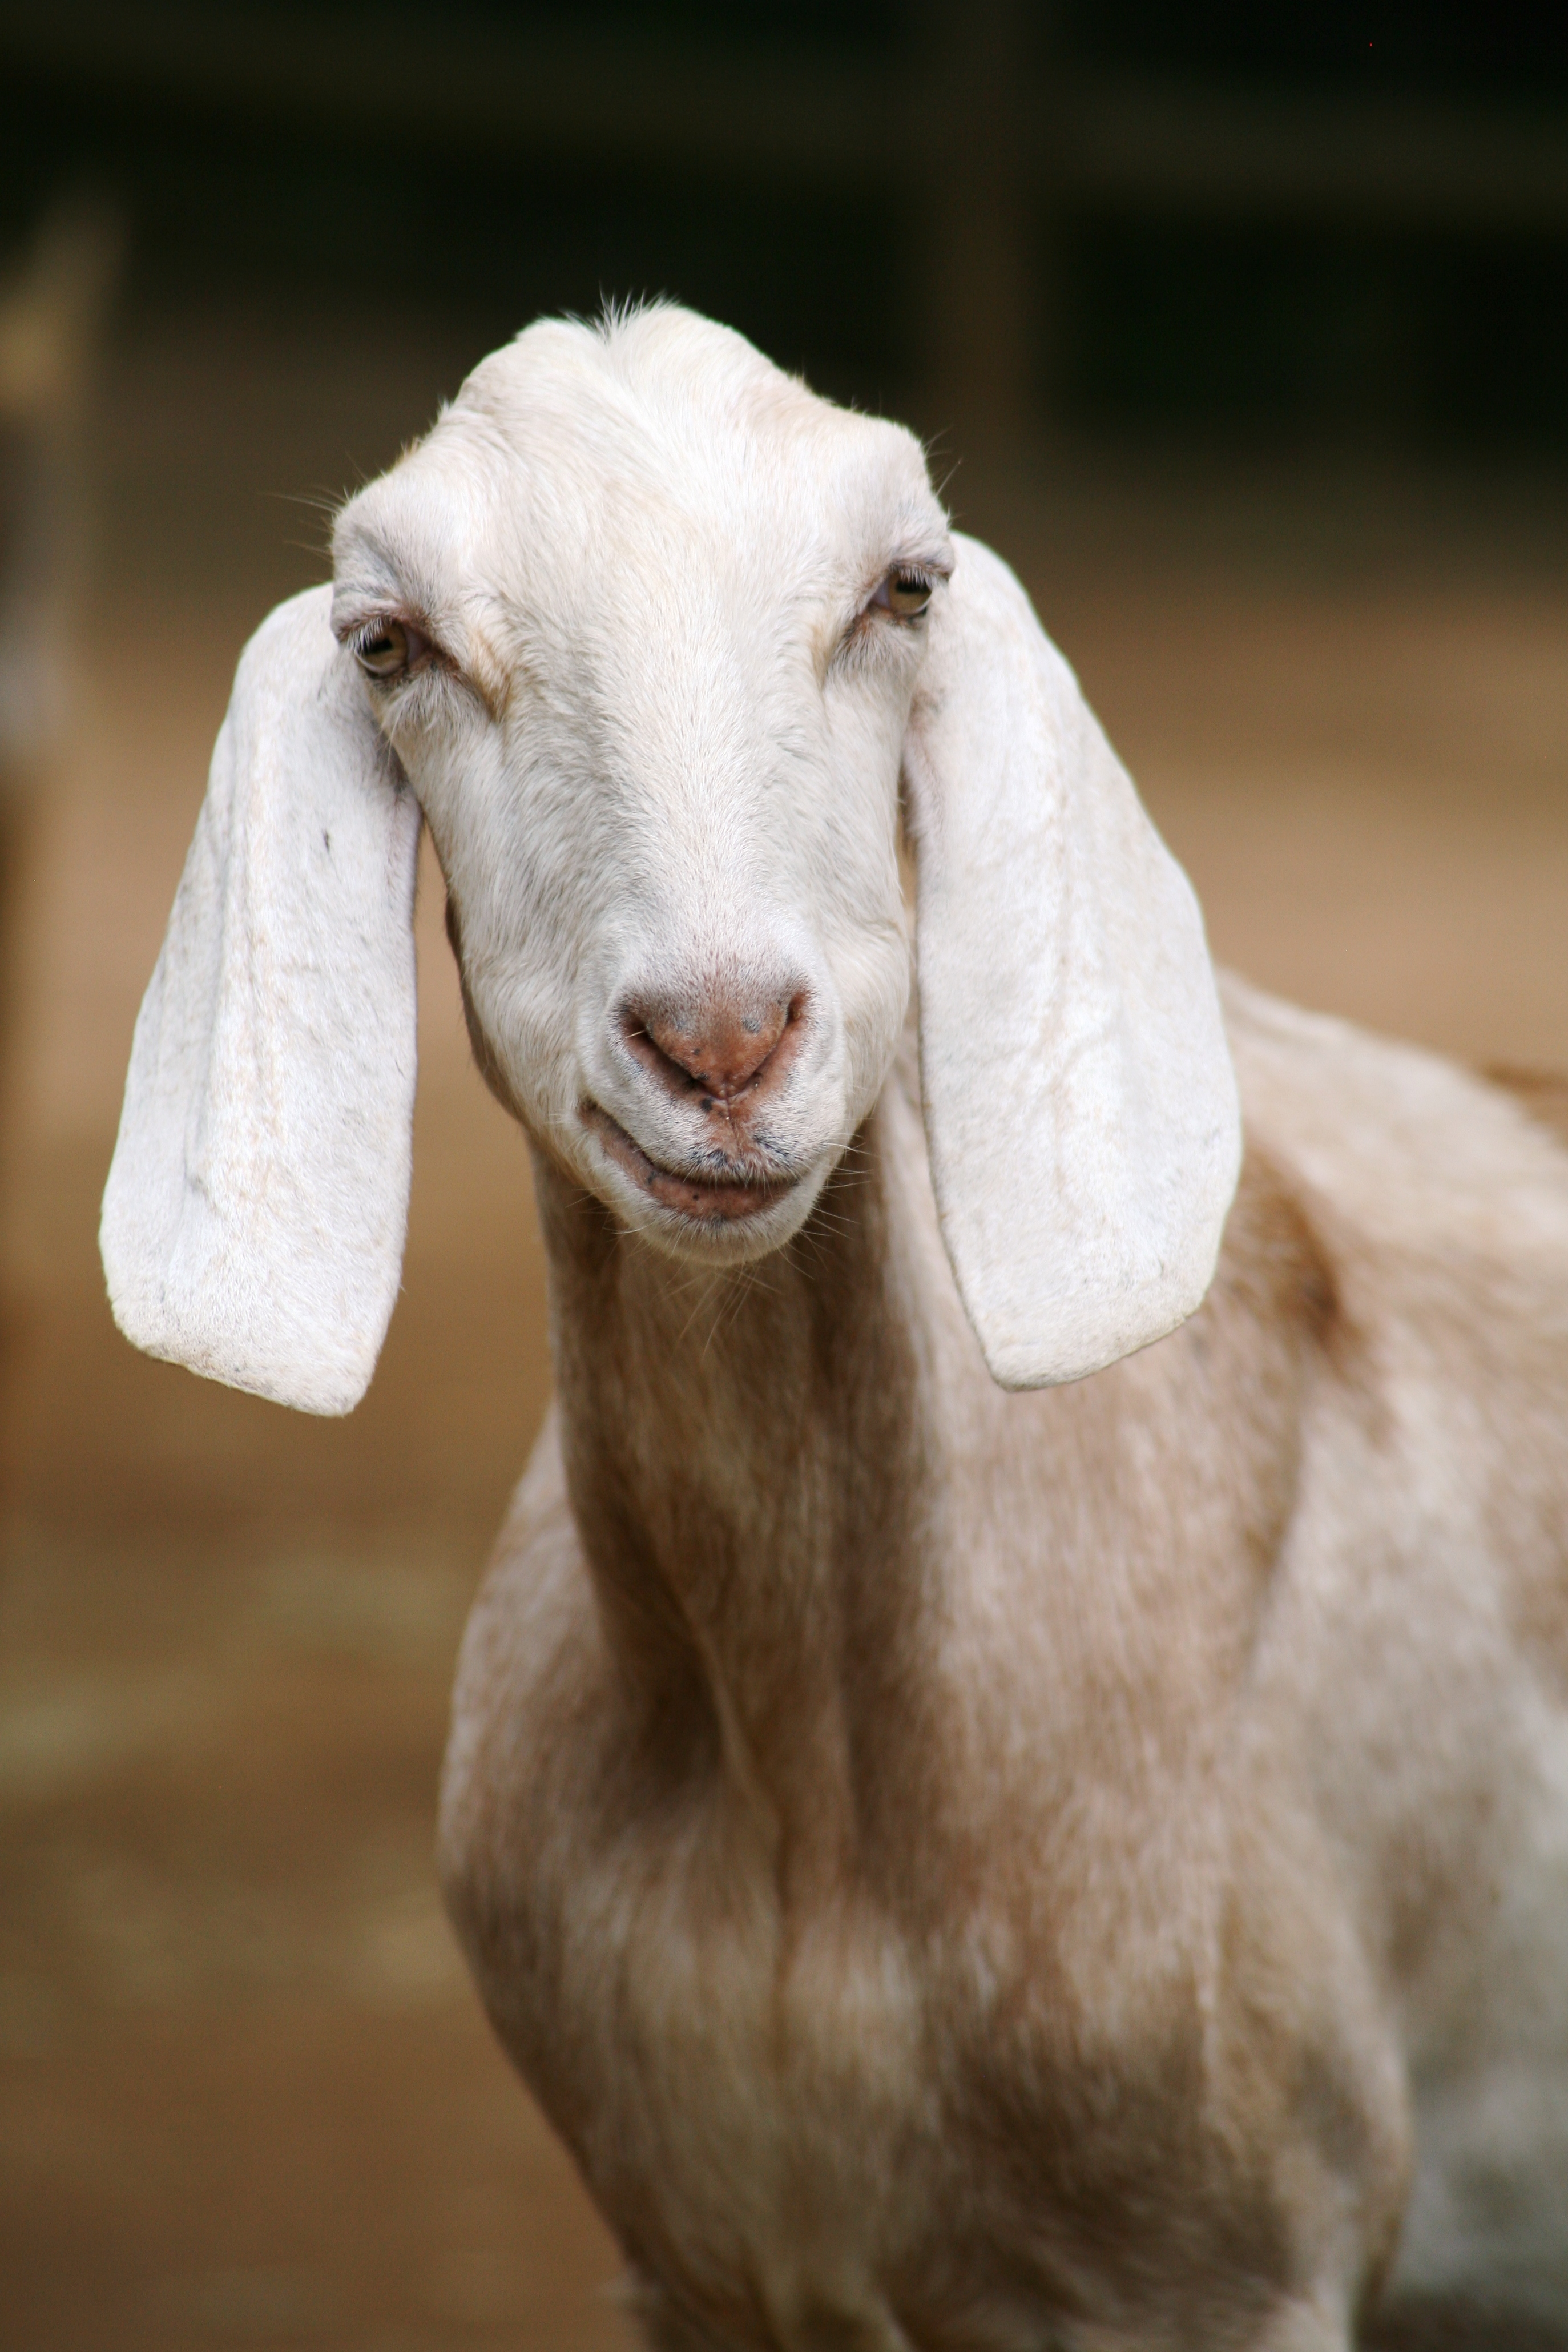 Custom Wallpapers For Iphone X White Goat Eating Grass During Daytime 183 Free Stock Photo